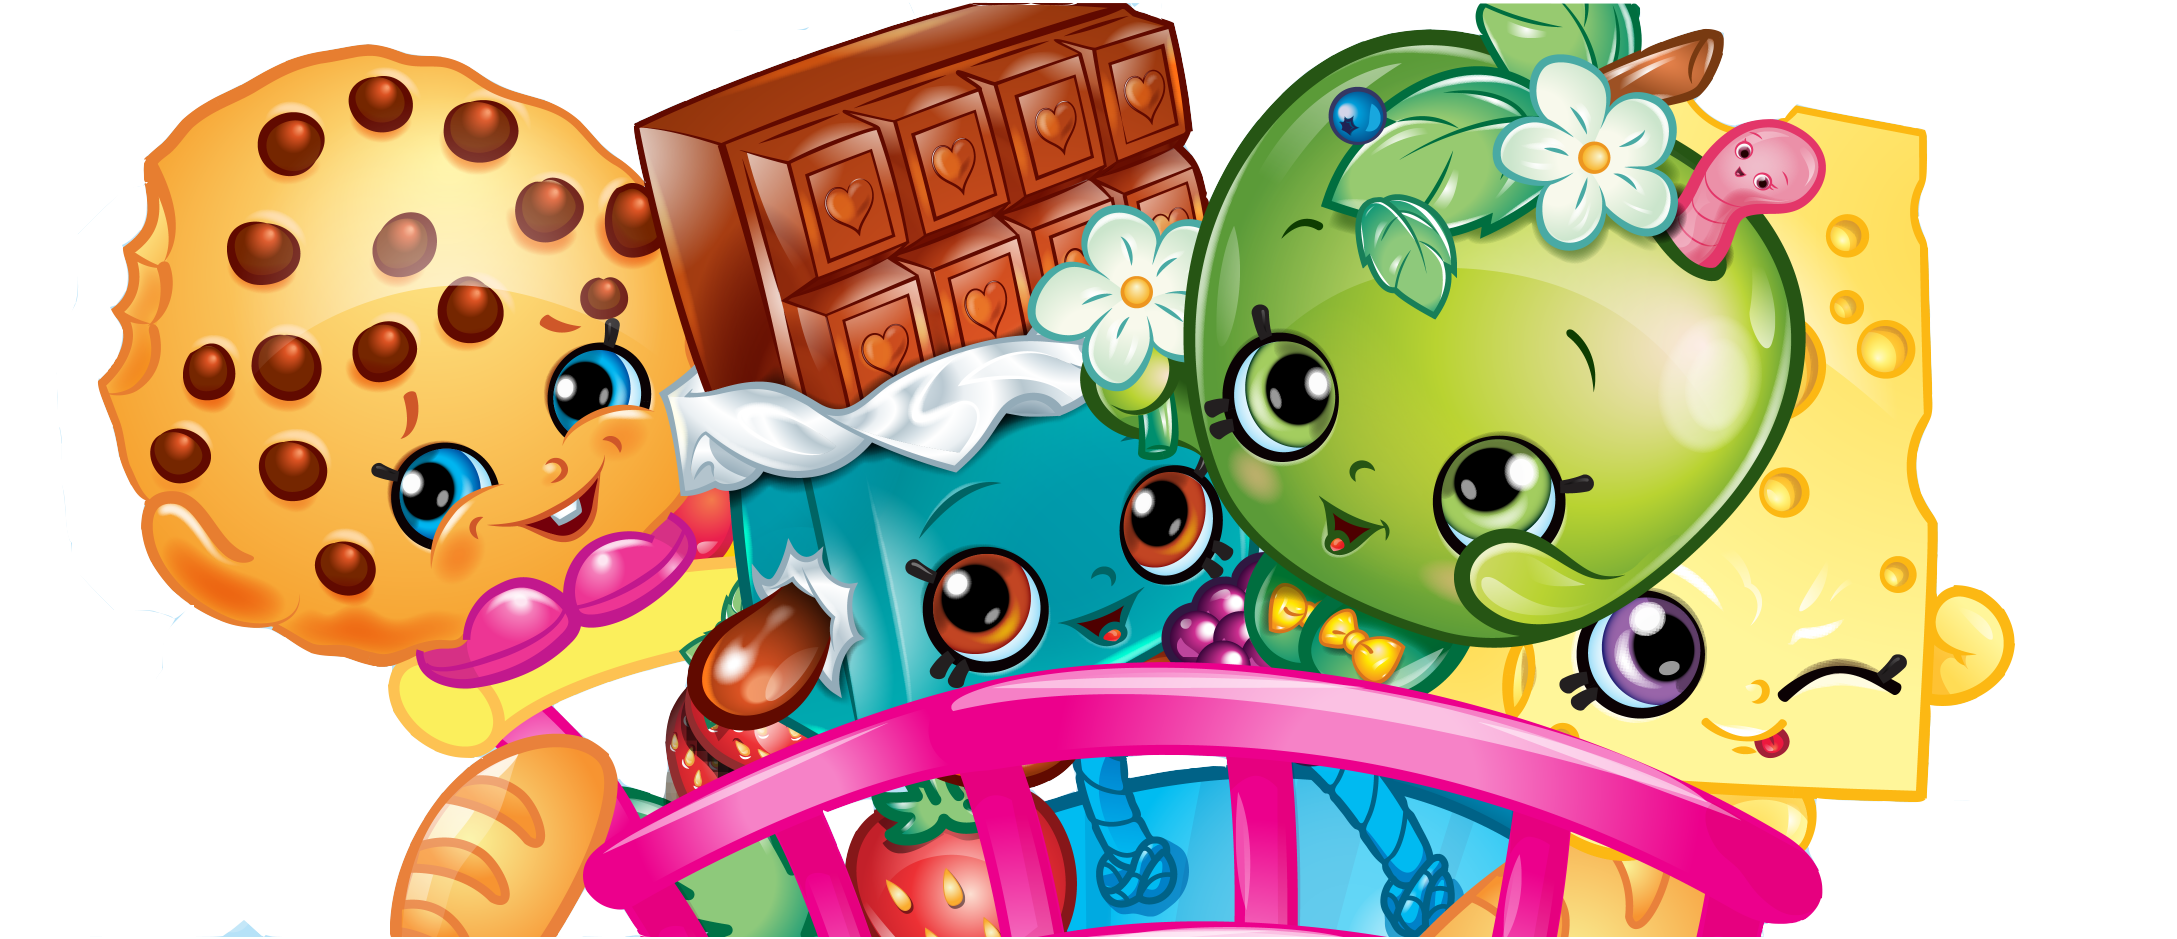 Four More For Sign Up Shopkins!